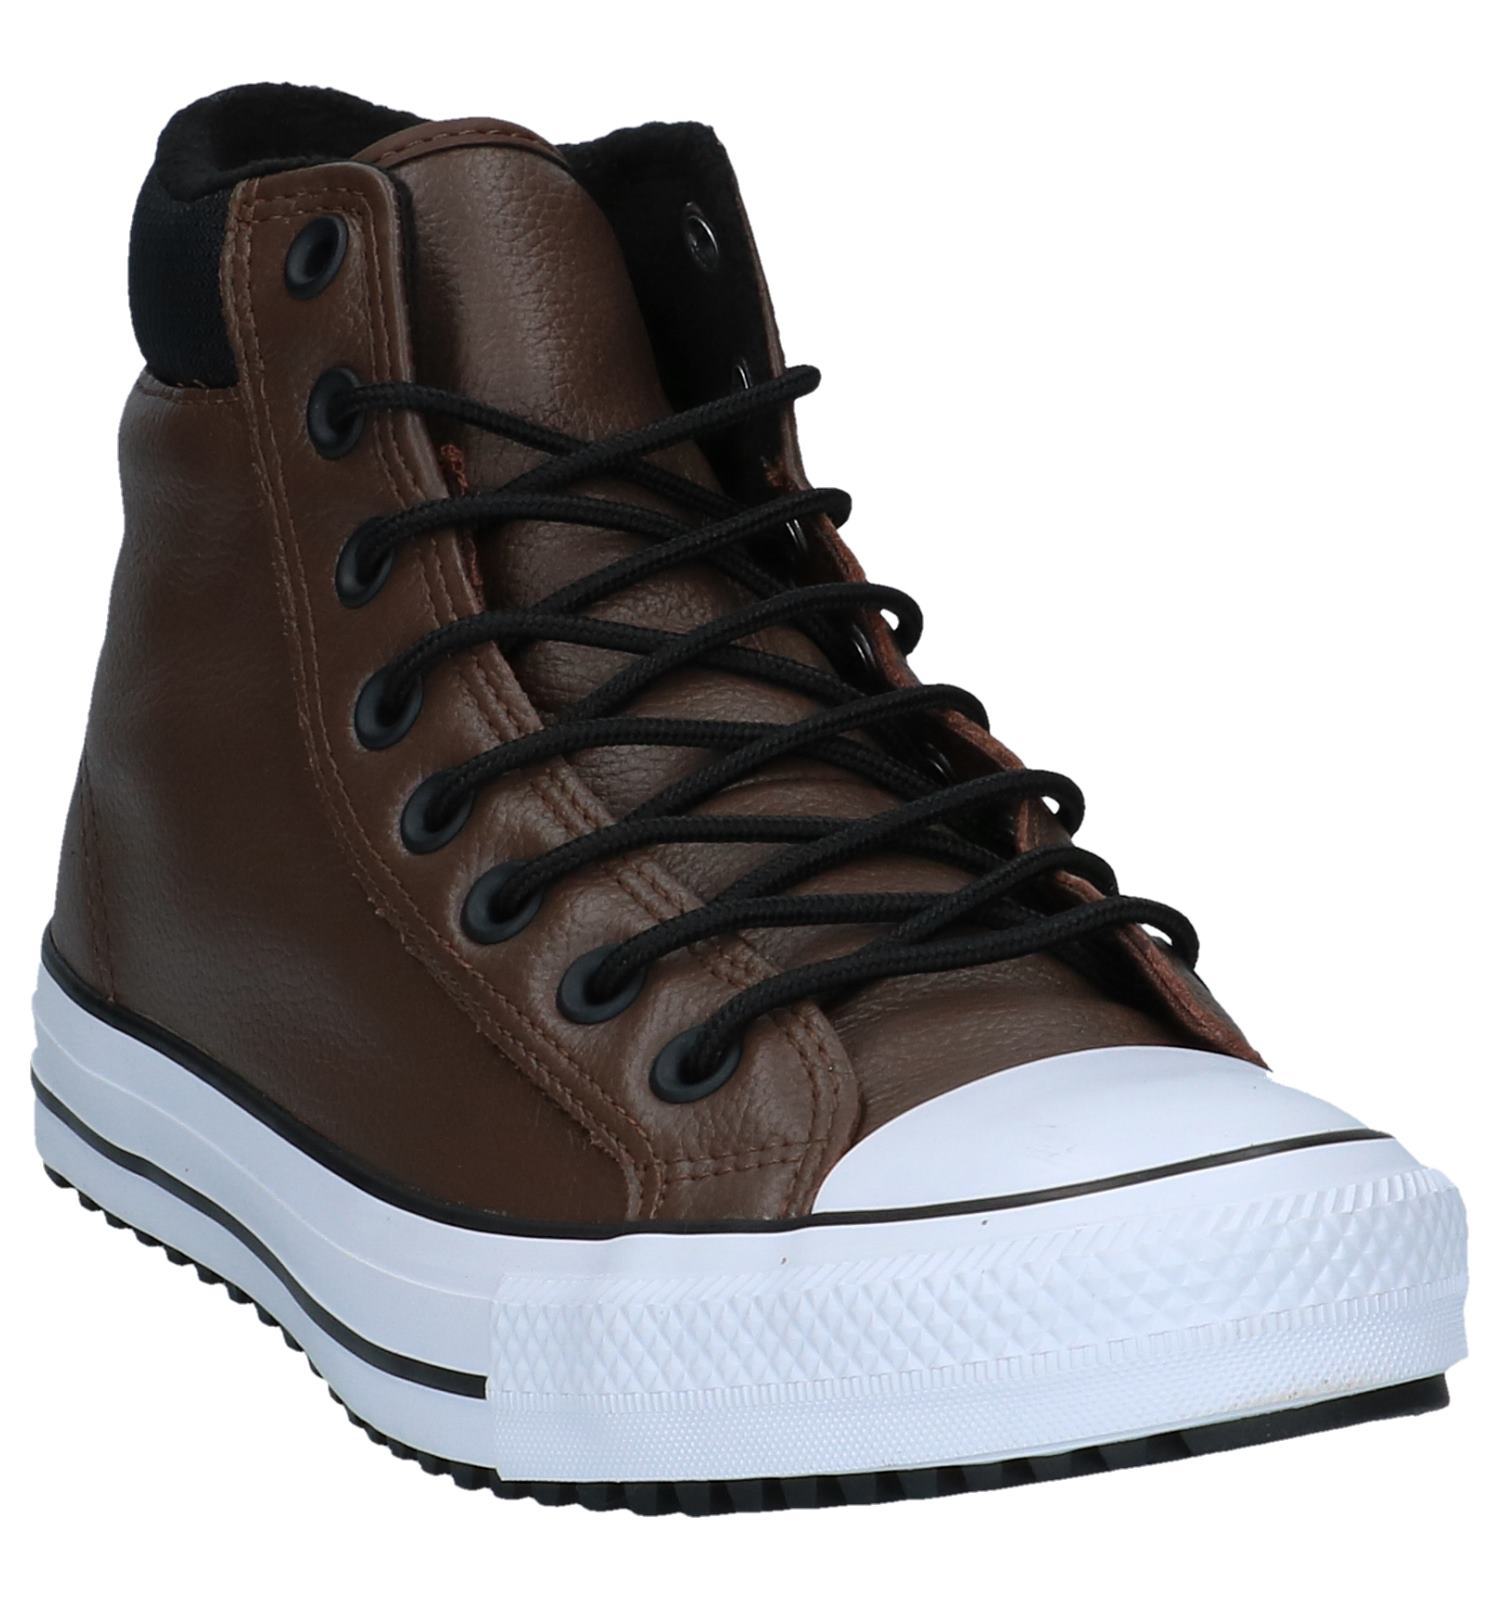 Hoge As Boot Converse Sneakers Pc Bruin l1Jc3KFT